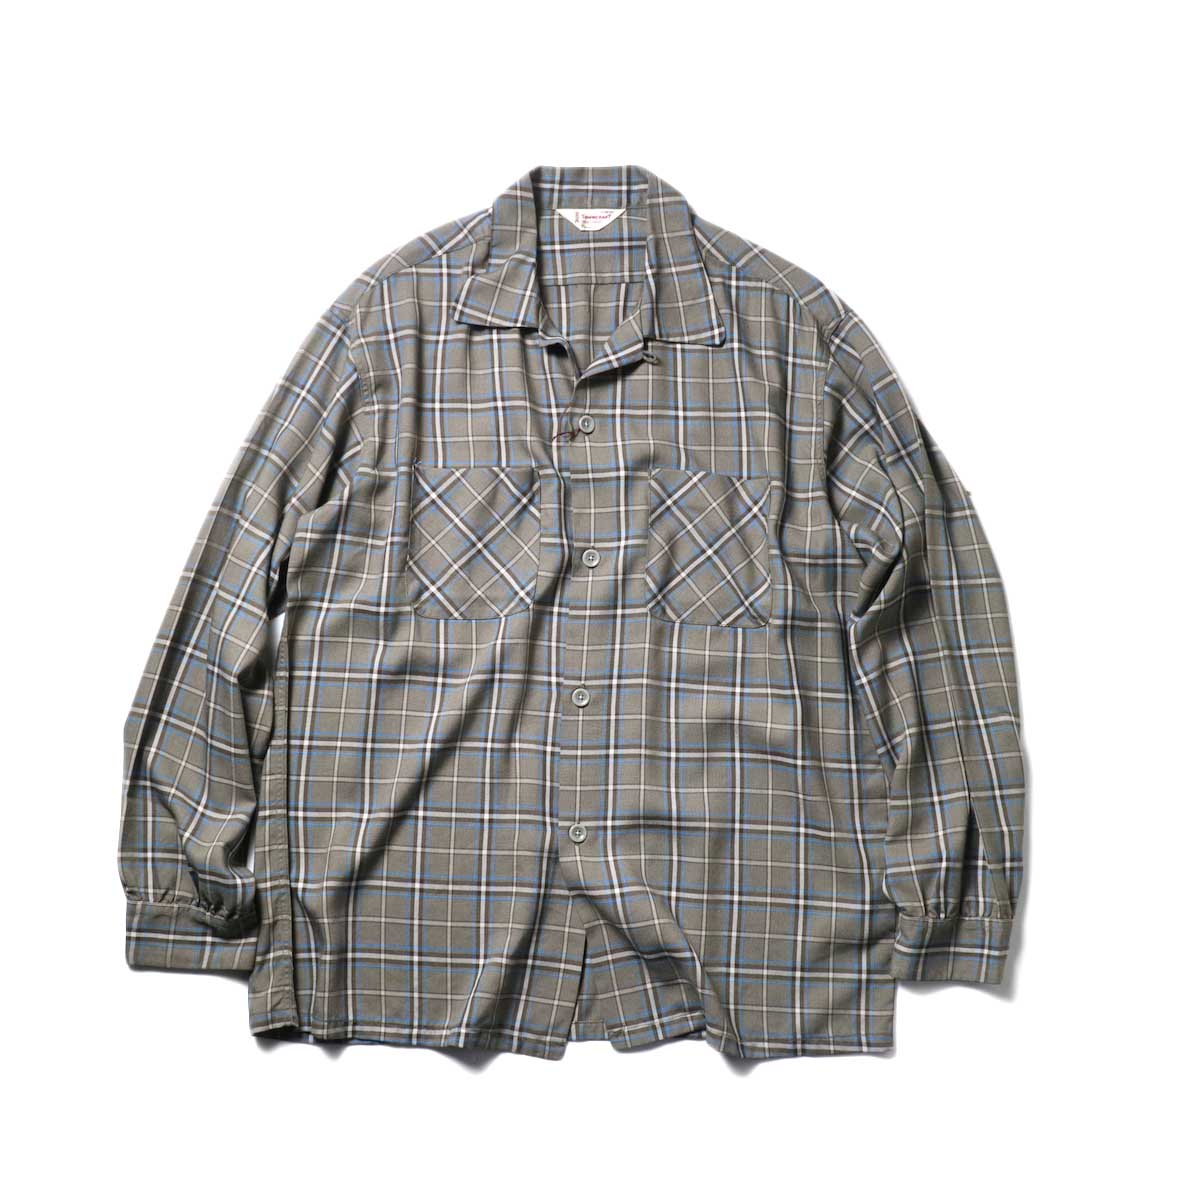 TOWN CRAFT / CLASSIC CHECK OPEN SHIRTS (Gray)正面